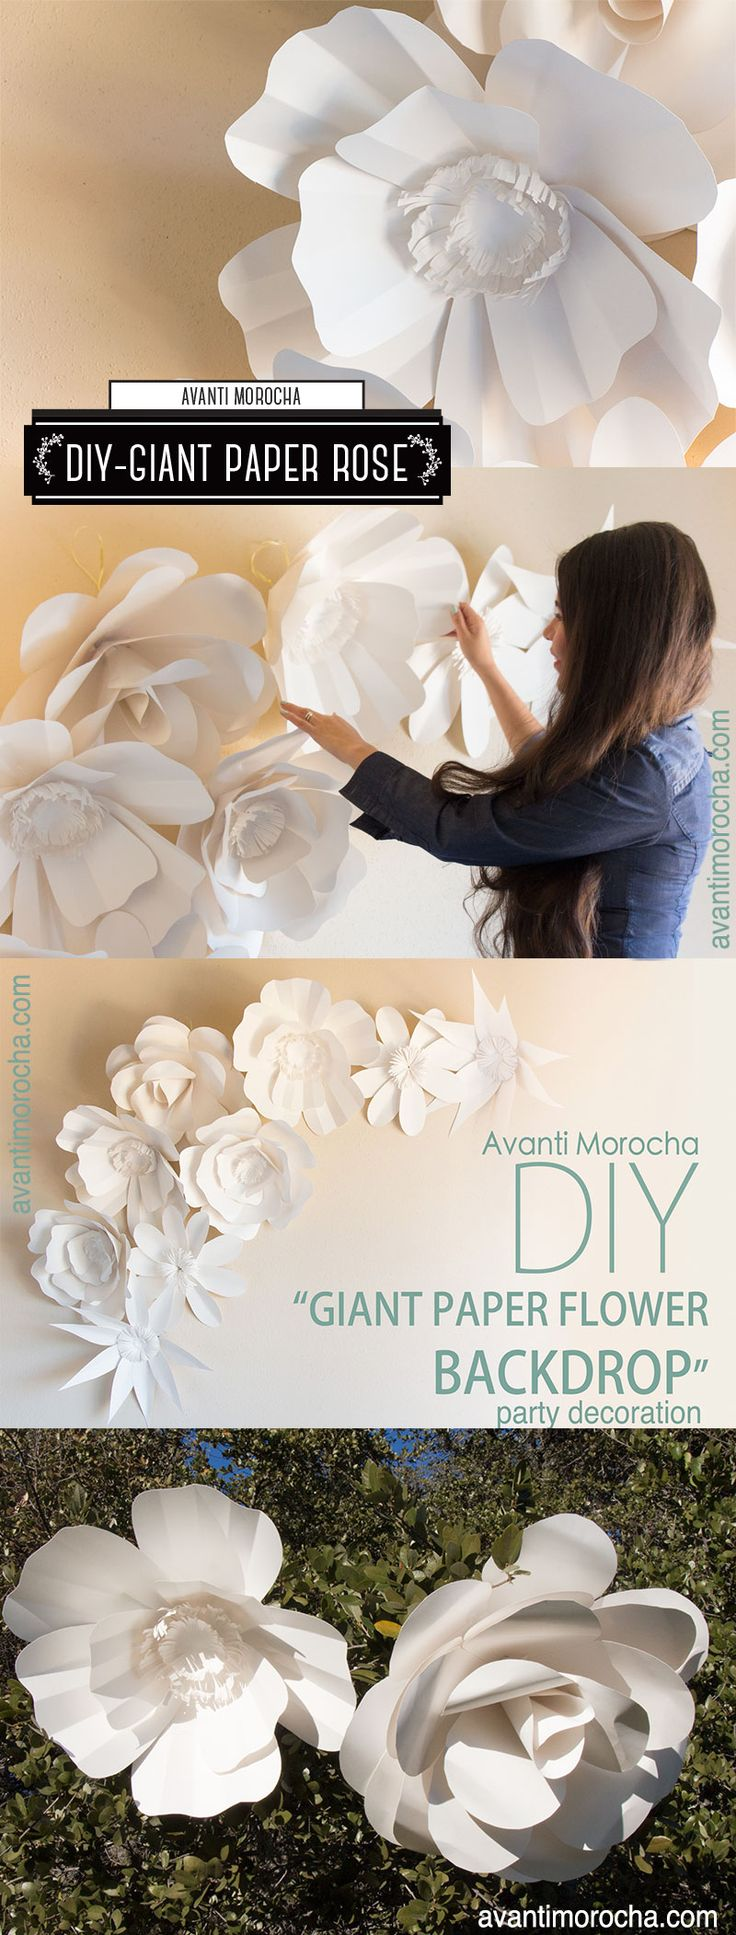 DIY Giant Paper Flower Backdrop / Weddings / Bodas / Mural de Flores Gigantes.